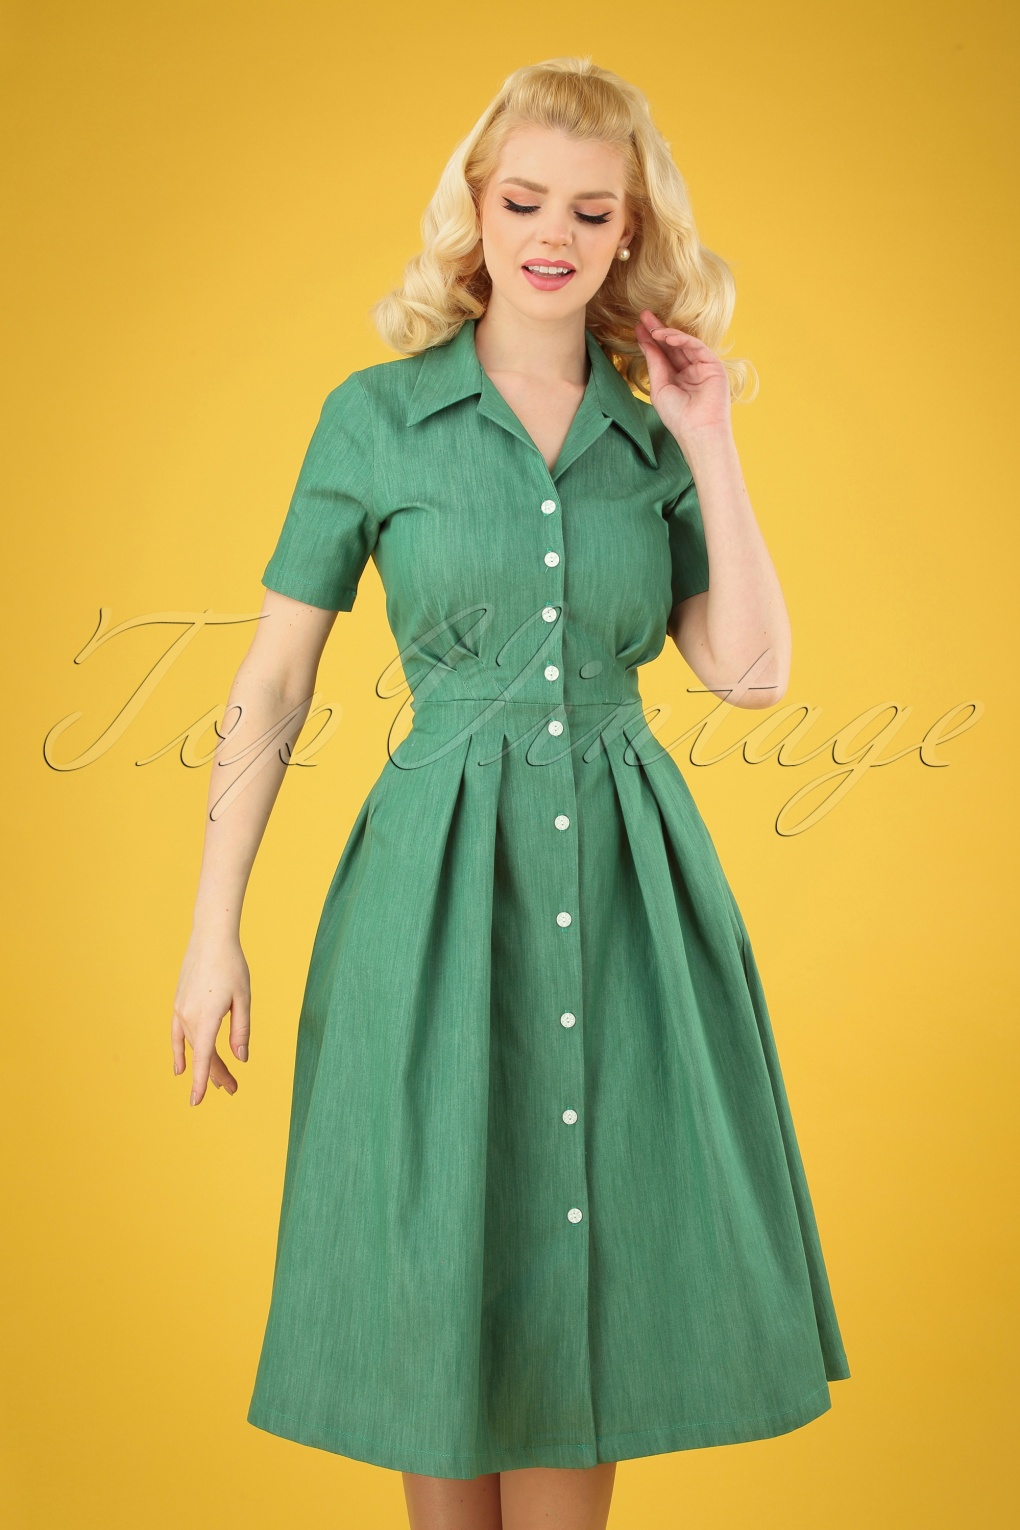 Vintage Tea Dresses, Floral Tea Dresses, Tea Length Dresses 50s Janet Swing Dress in Green Denim �94.93 AT vintagedancer.com